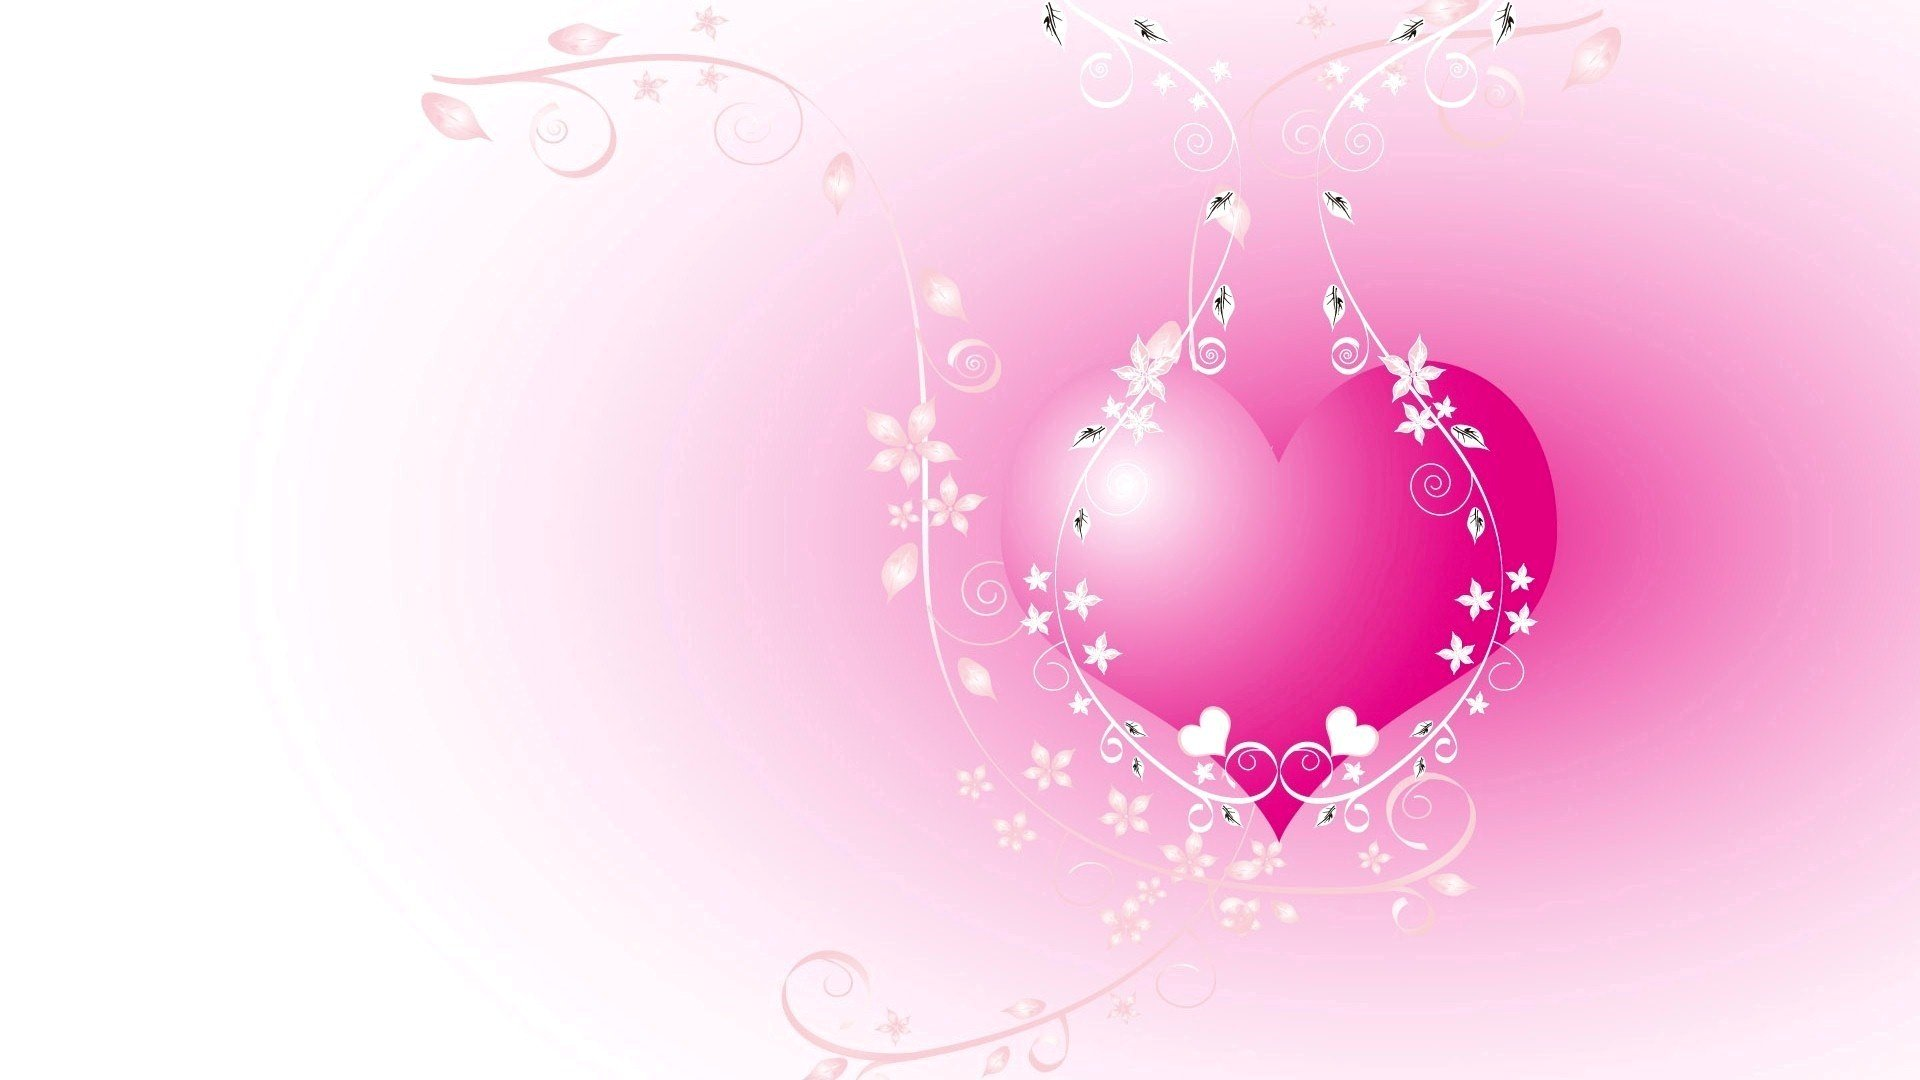 Pink Heart with White Vector Design HD Wallpapers 1920x1080